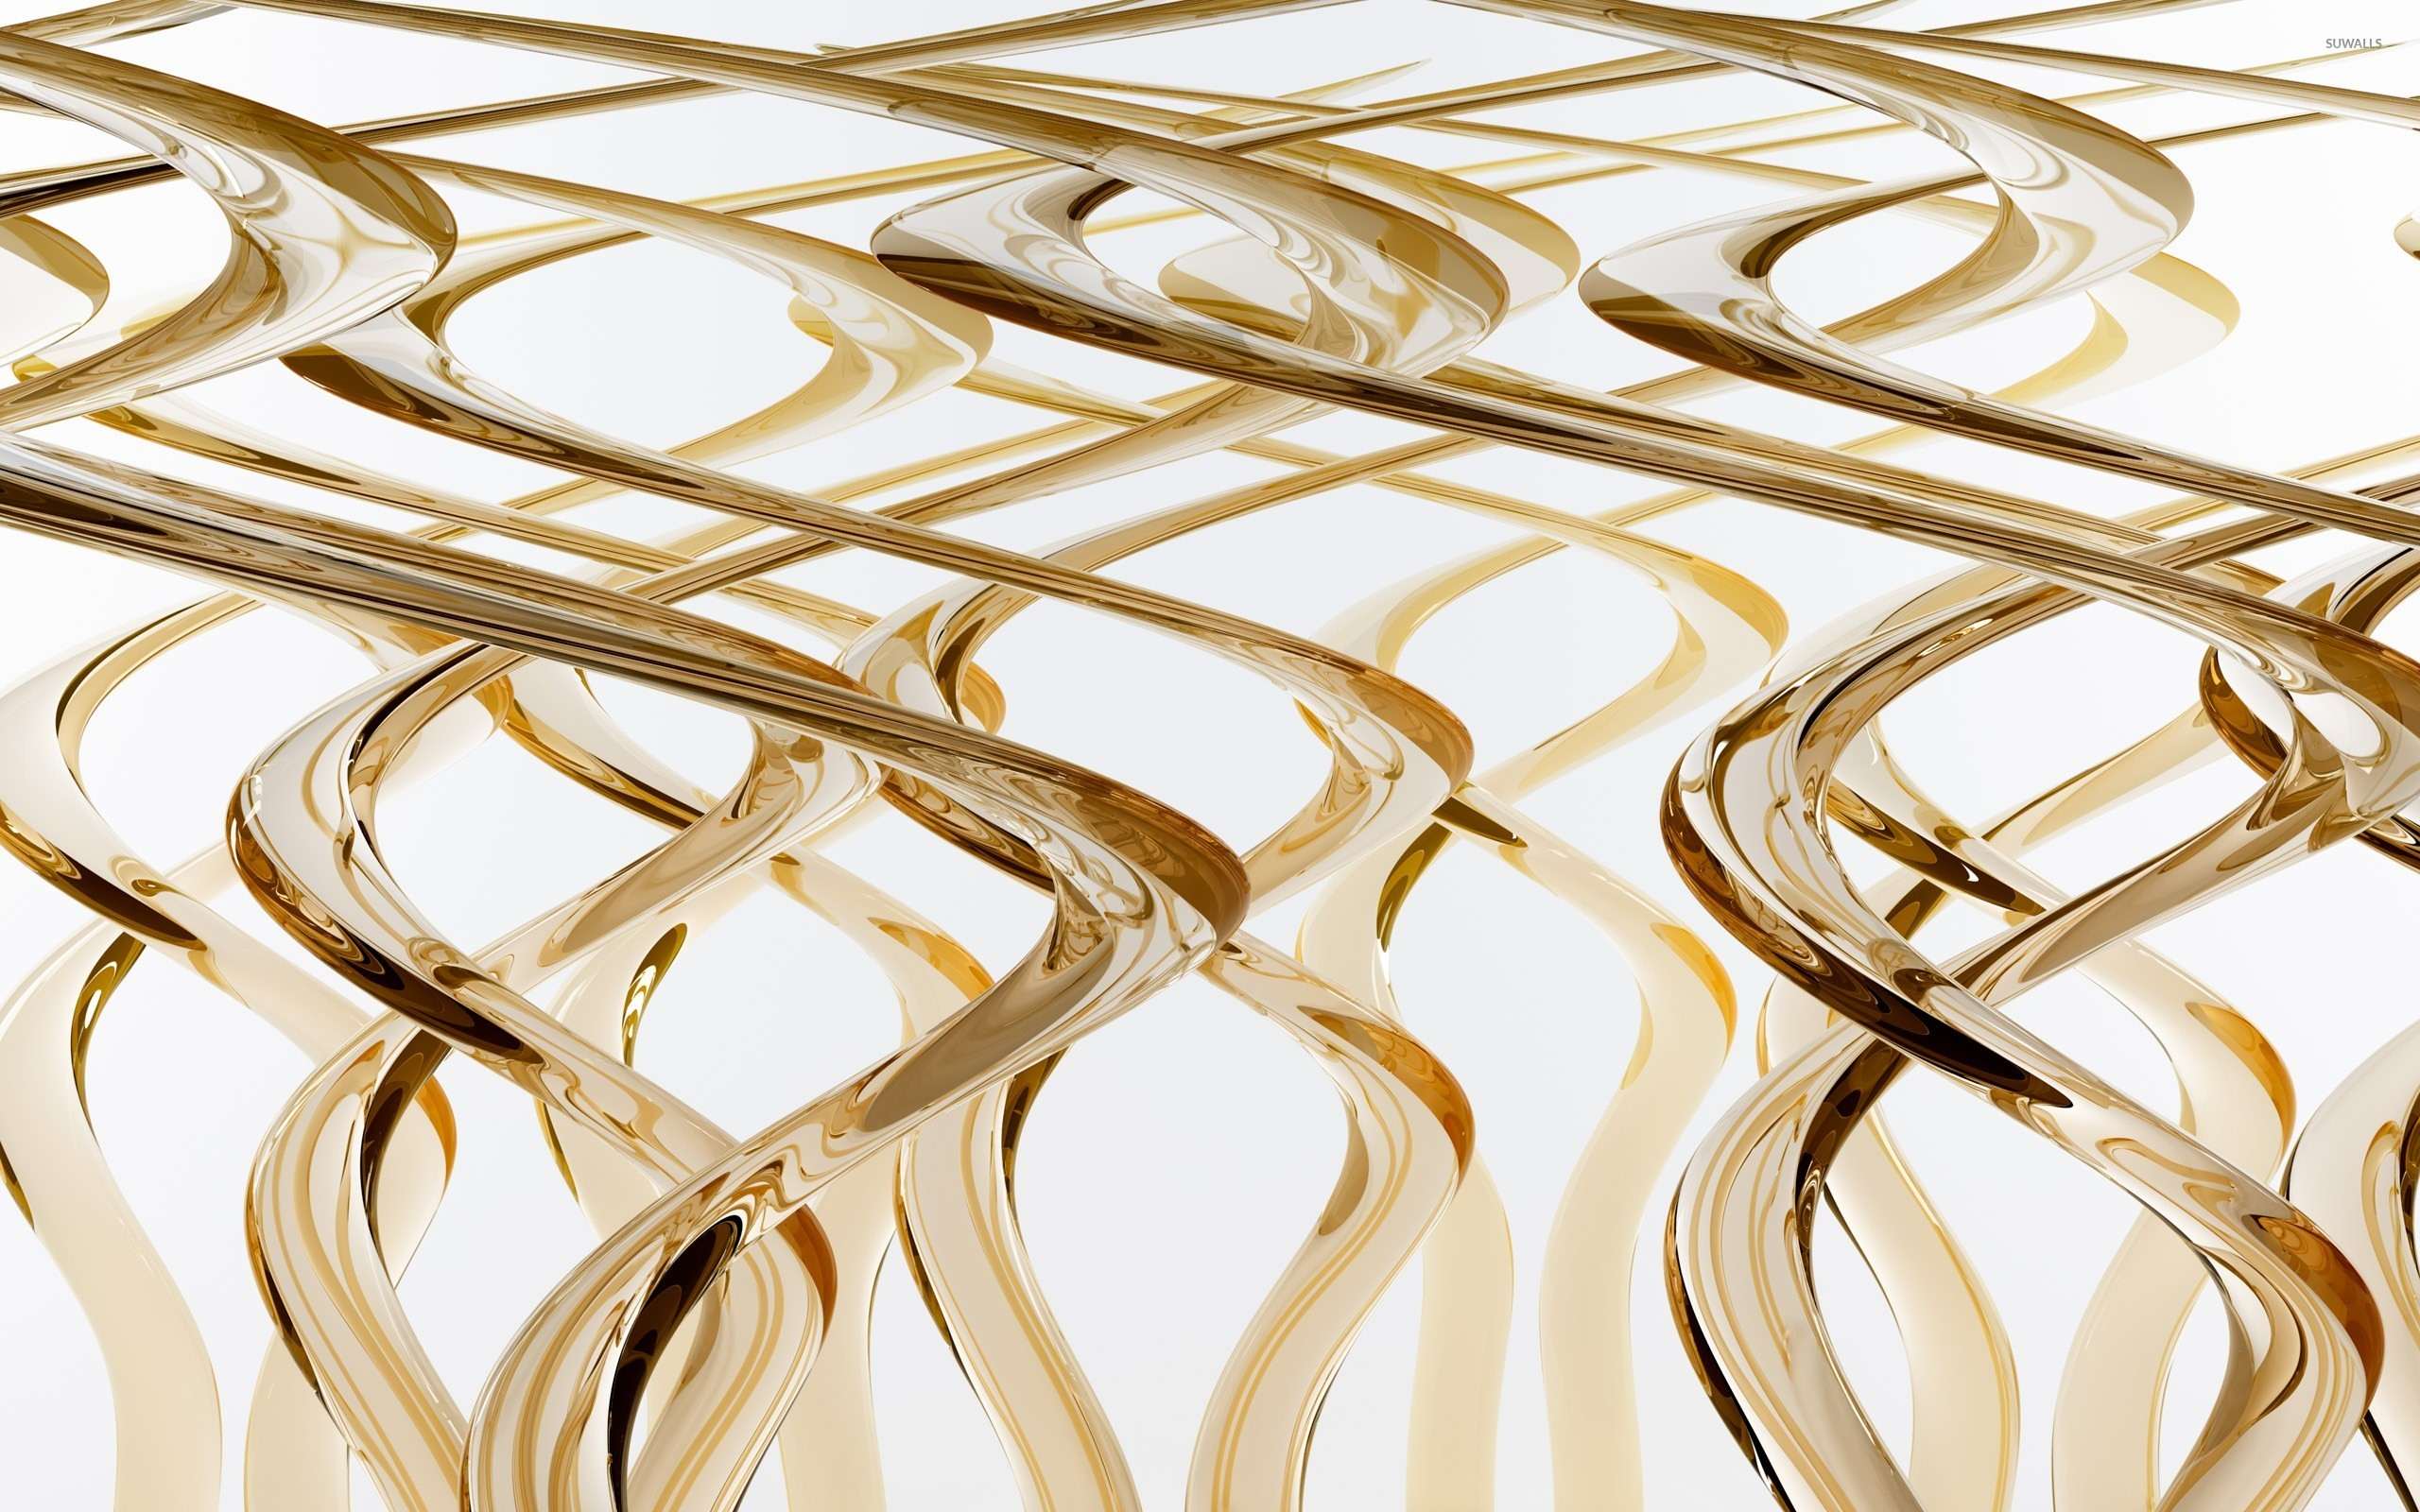 Gold strands wallpaper 3d wallpapers 11144 for Gold 3d wallpaper